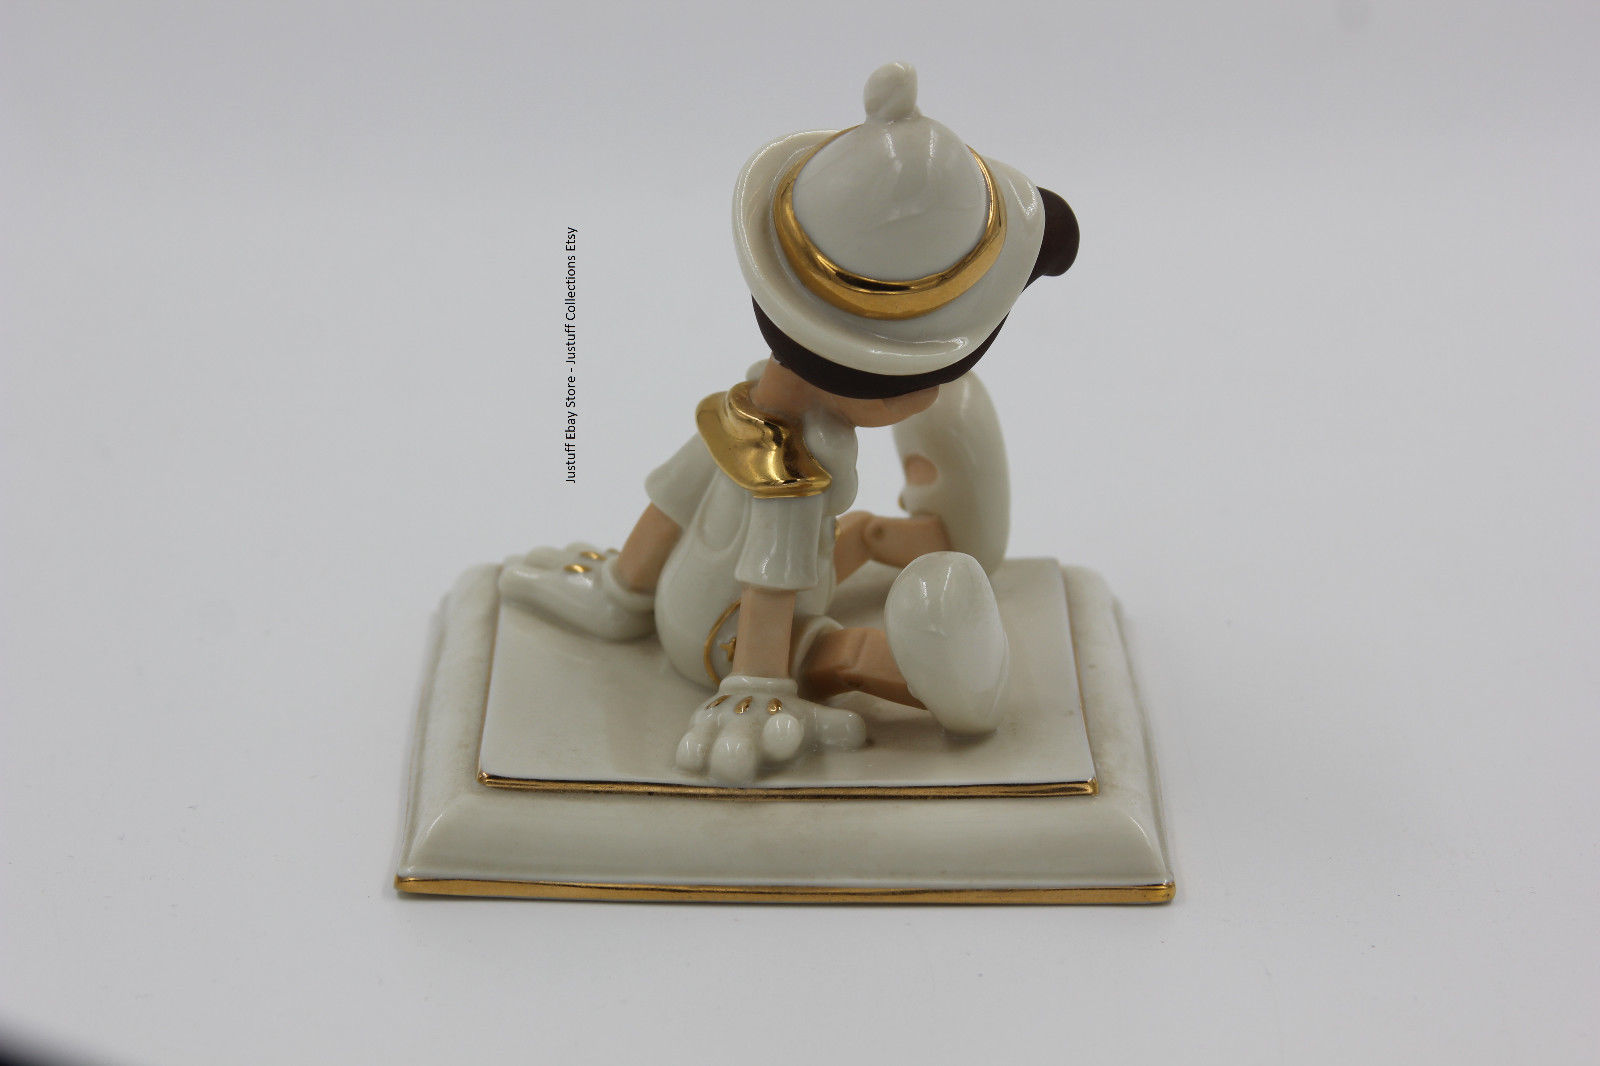 Disney Cookie Jar Etsy >> Disney Pinocchio Let Your Conscience Be And 50 Similar Items